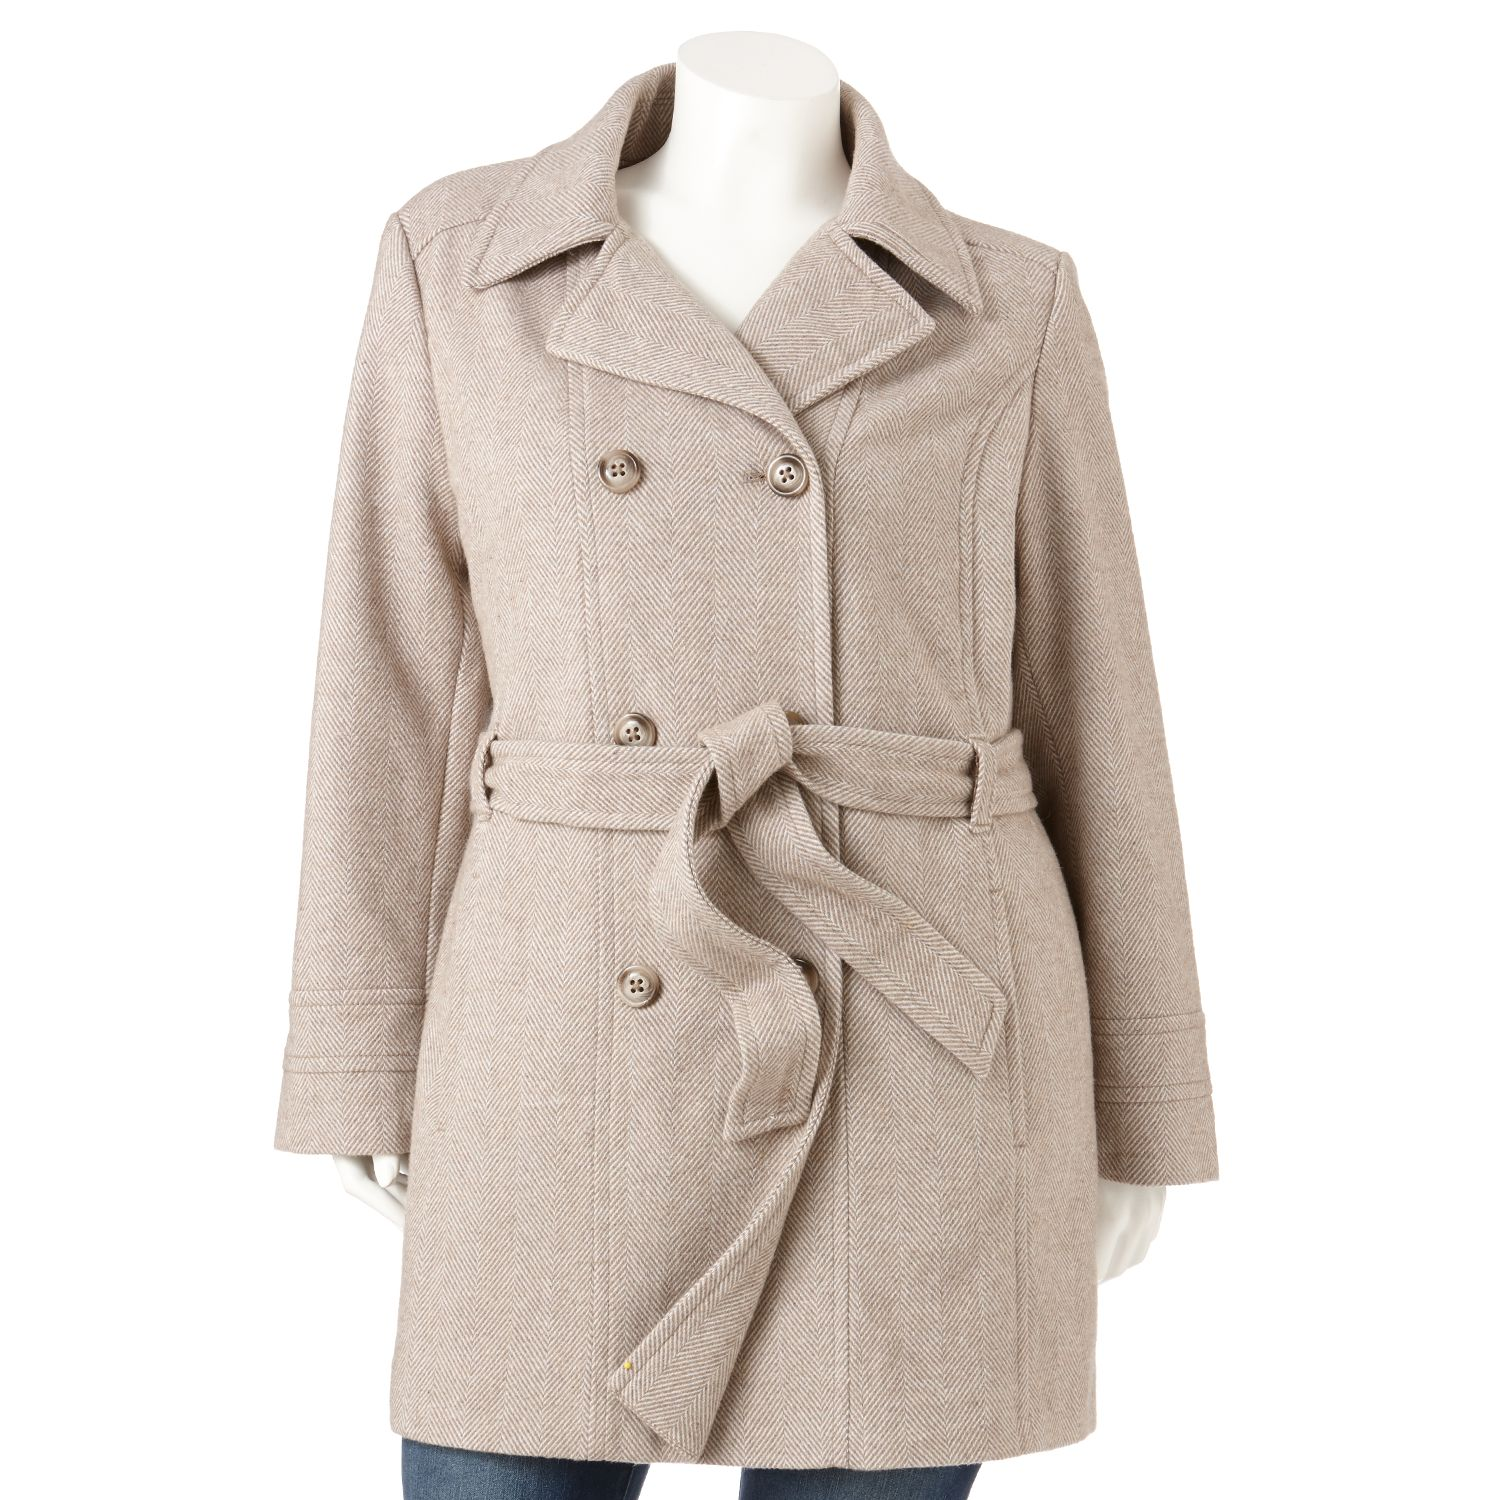 Croft & Barrow Herringbone Wool-Blend Coat - Women's Plus